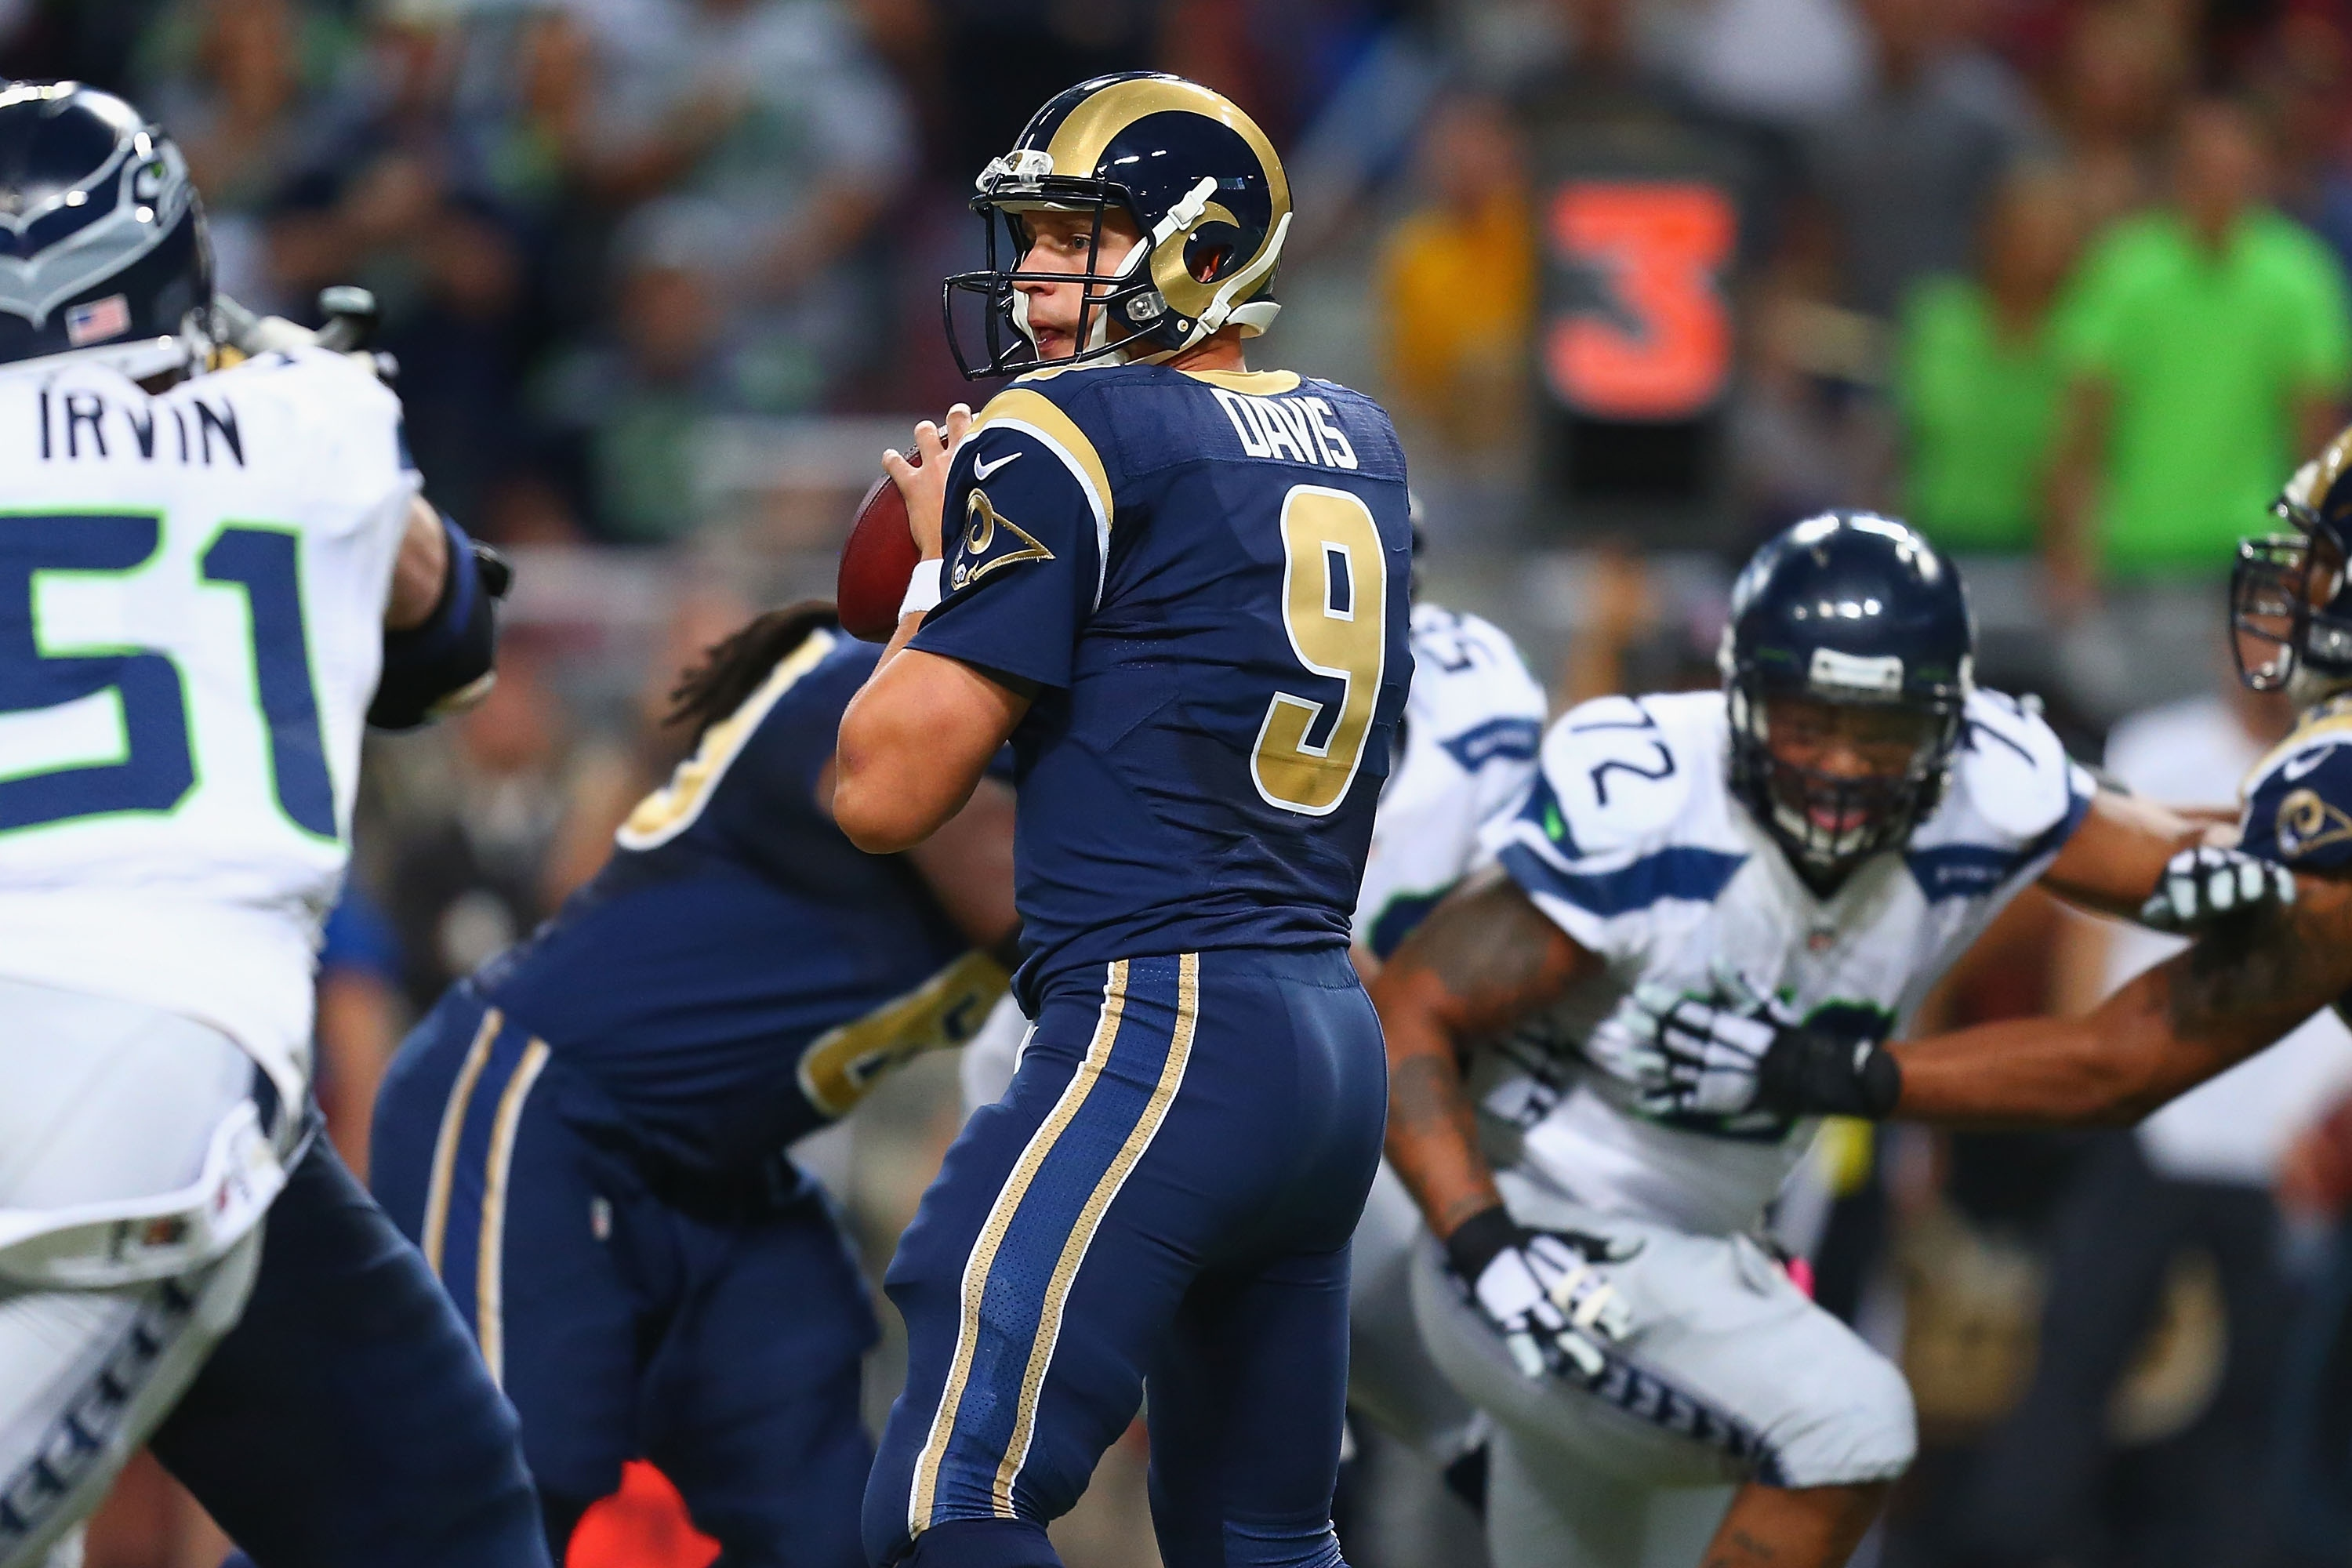 ST. LOUIS, MO - OCTOBER 19: Austin Davis #9 of the St. Louis Rams looks to pass against the Seattle Seahawks in the fourth quarter at the Edward Jones Dome on October 19, 2014 in St. Louis, Missouri.  The Rams beat the Seahawks 28-26.  (Photo by Dilip Vishwanat/Getty Images)